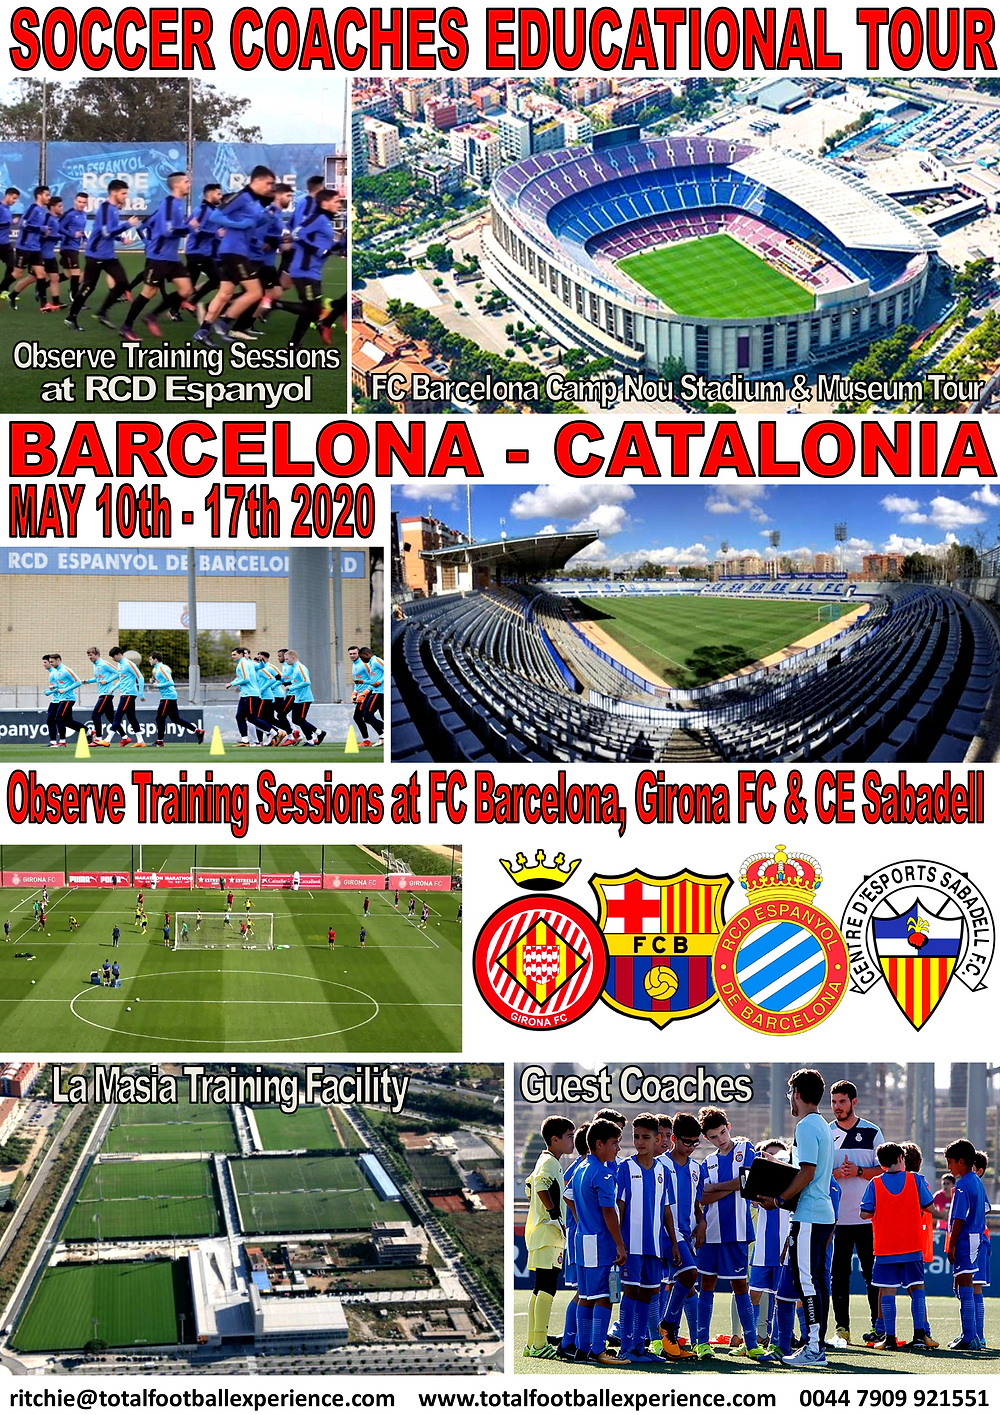 SOCCER COACHES EDUCATIONAL TOUR  to BARCELONA